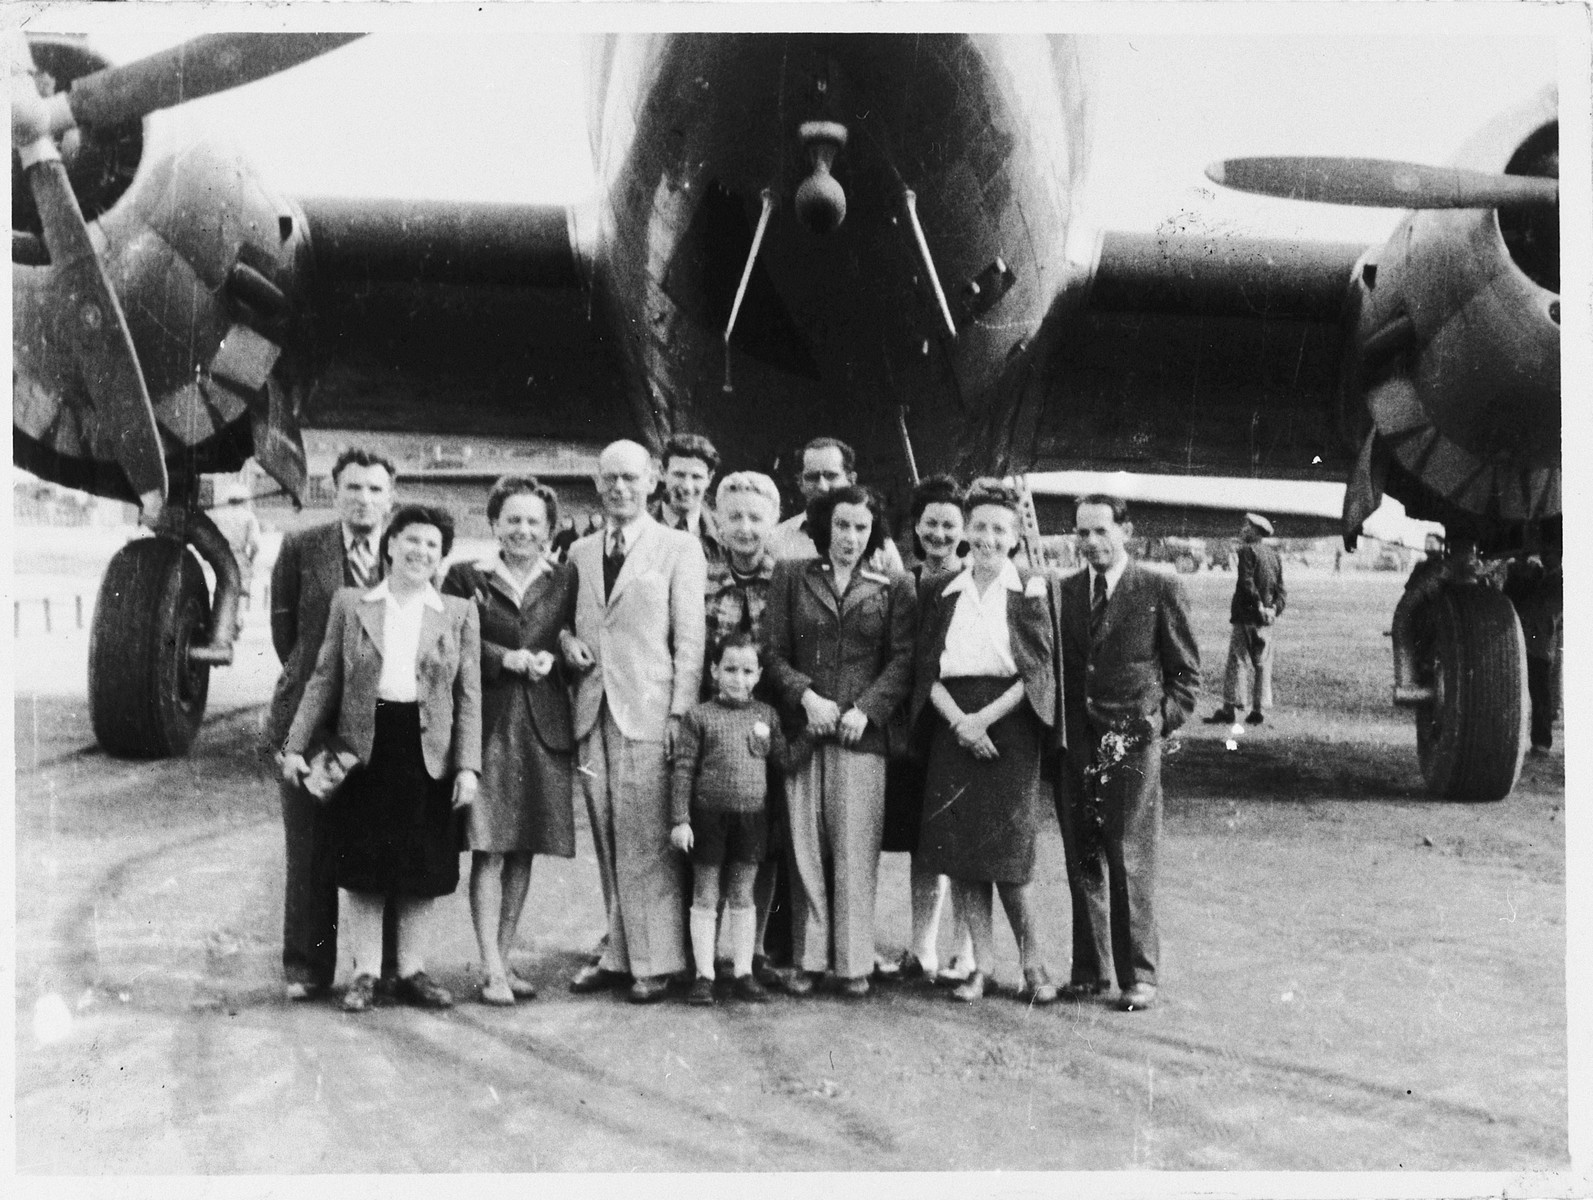 Group portrait of Jewish refugees at the Shanghai airport.  Among those pictured are: Rudolph and Ana Brosan (at the far left), Alfred Brosan (center, behind the man in the light suit), and Richard Brosan (first on the right).